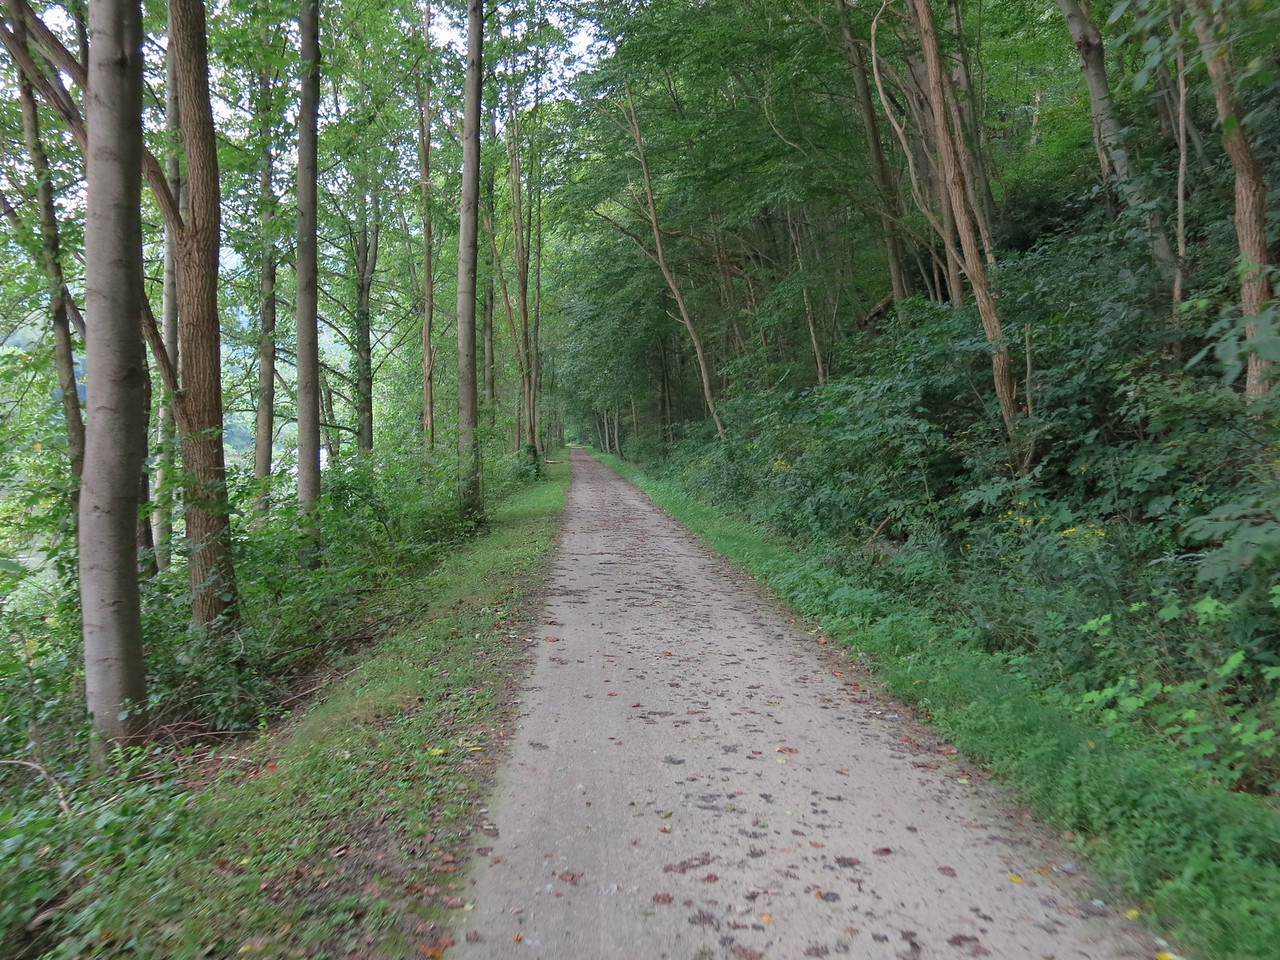 The trail and its packed limestone surface